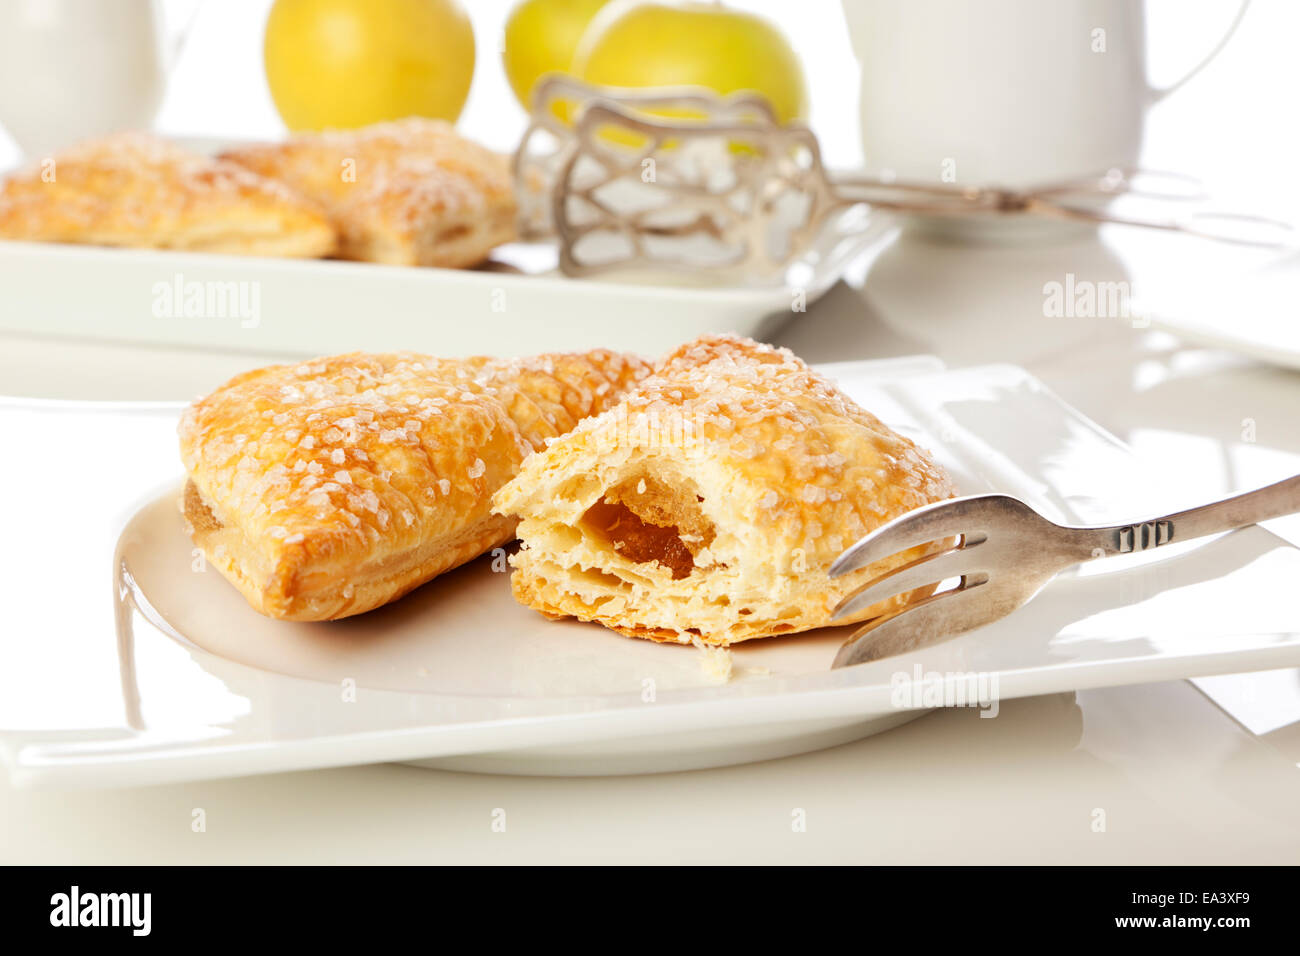 Apple turnover pastry - Stock Image